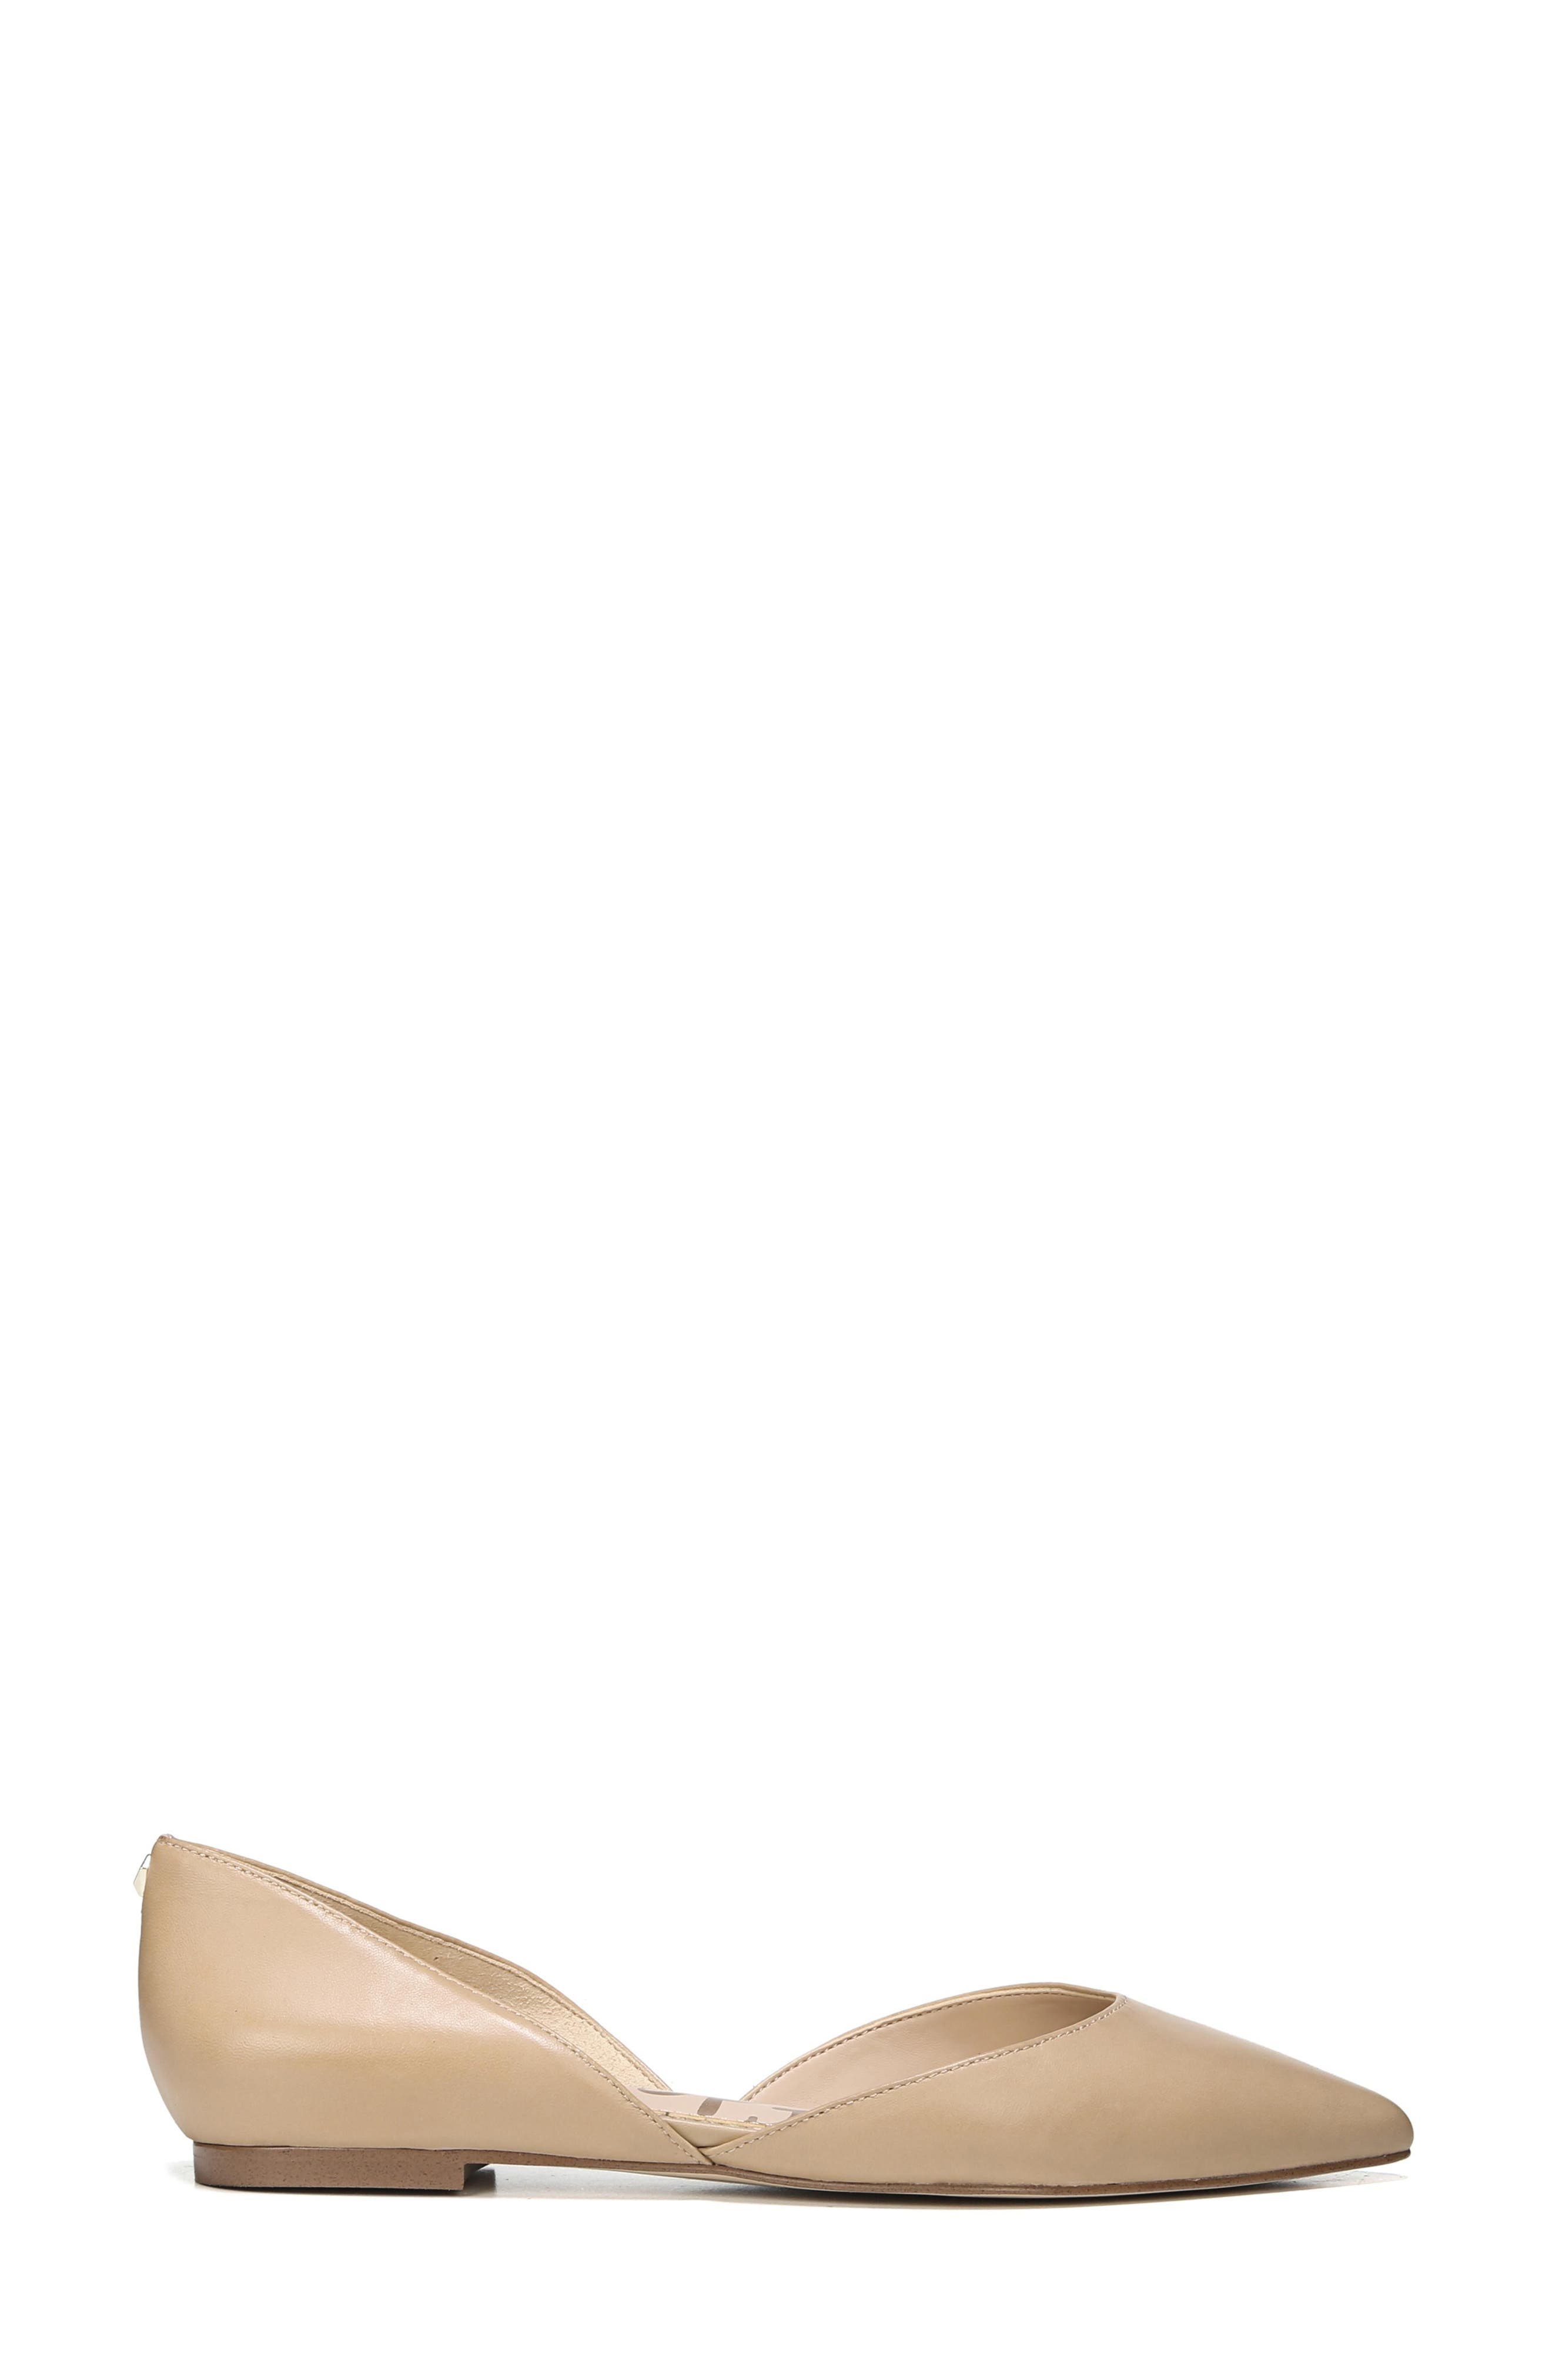 SAM EDELMAN, Rodney Pointy Toe d'Orsay Flat, Alternate thumbnail 3, color, CLASSIC NUDE LEATHER